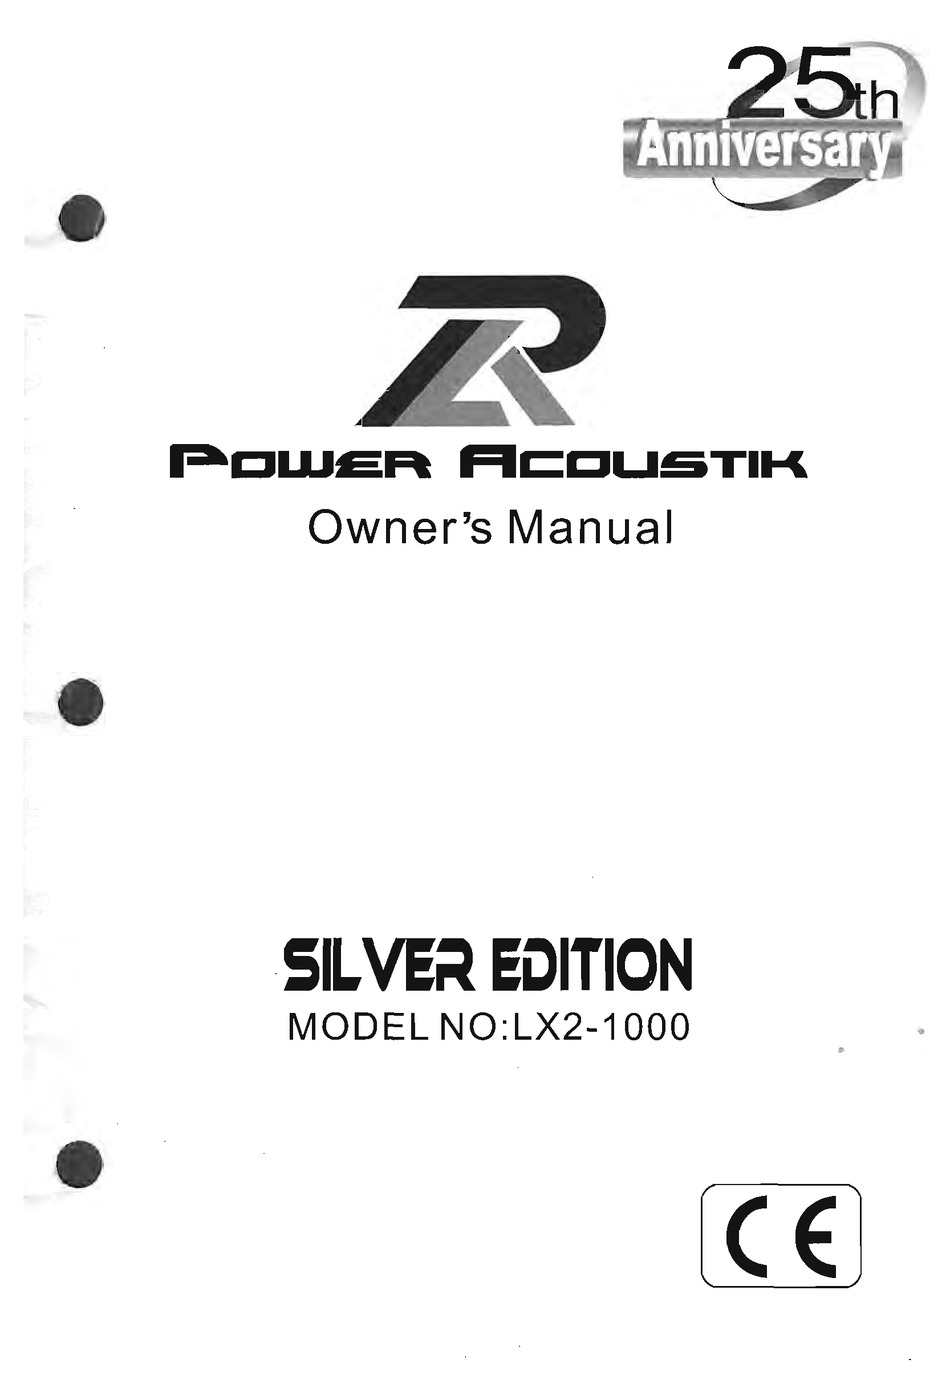 POWER ACOUSTIK LX2-2000 SILVER EDITION OWNER'S MANUAL Pdf